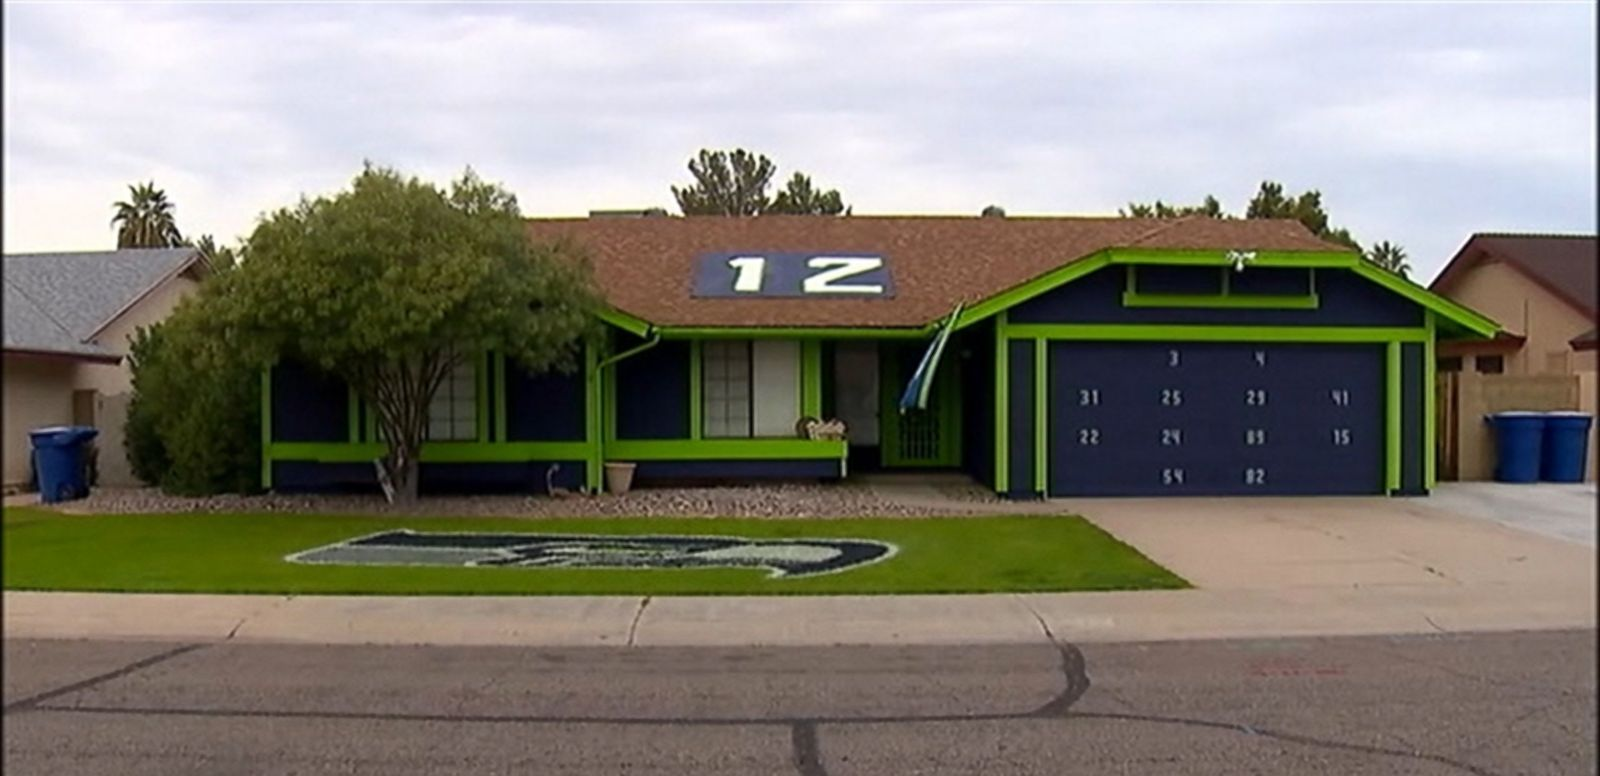 VIDEO: Ashtin Fitzwater painted his Arizona home in the Seahawks' blue and green and put the team logo on his front lawn.